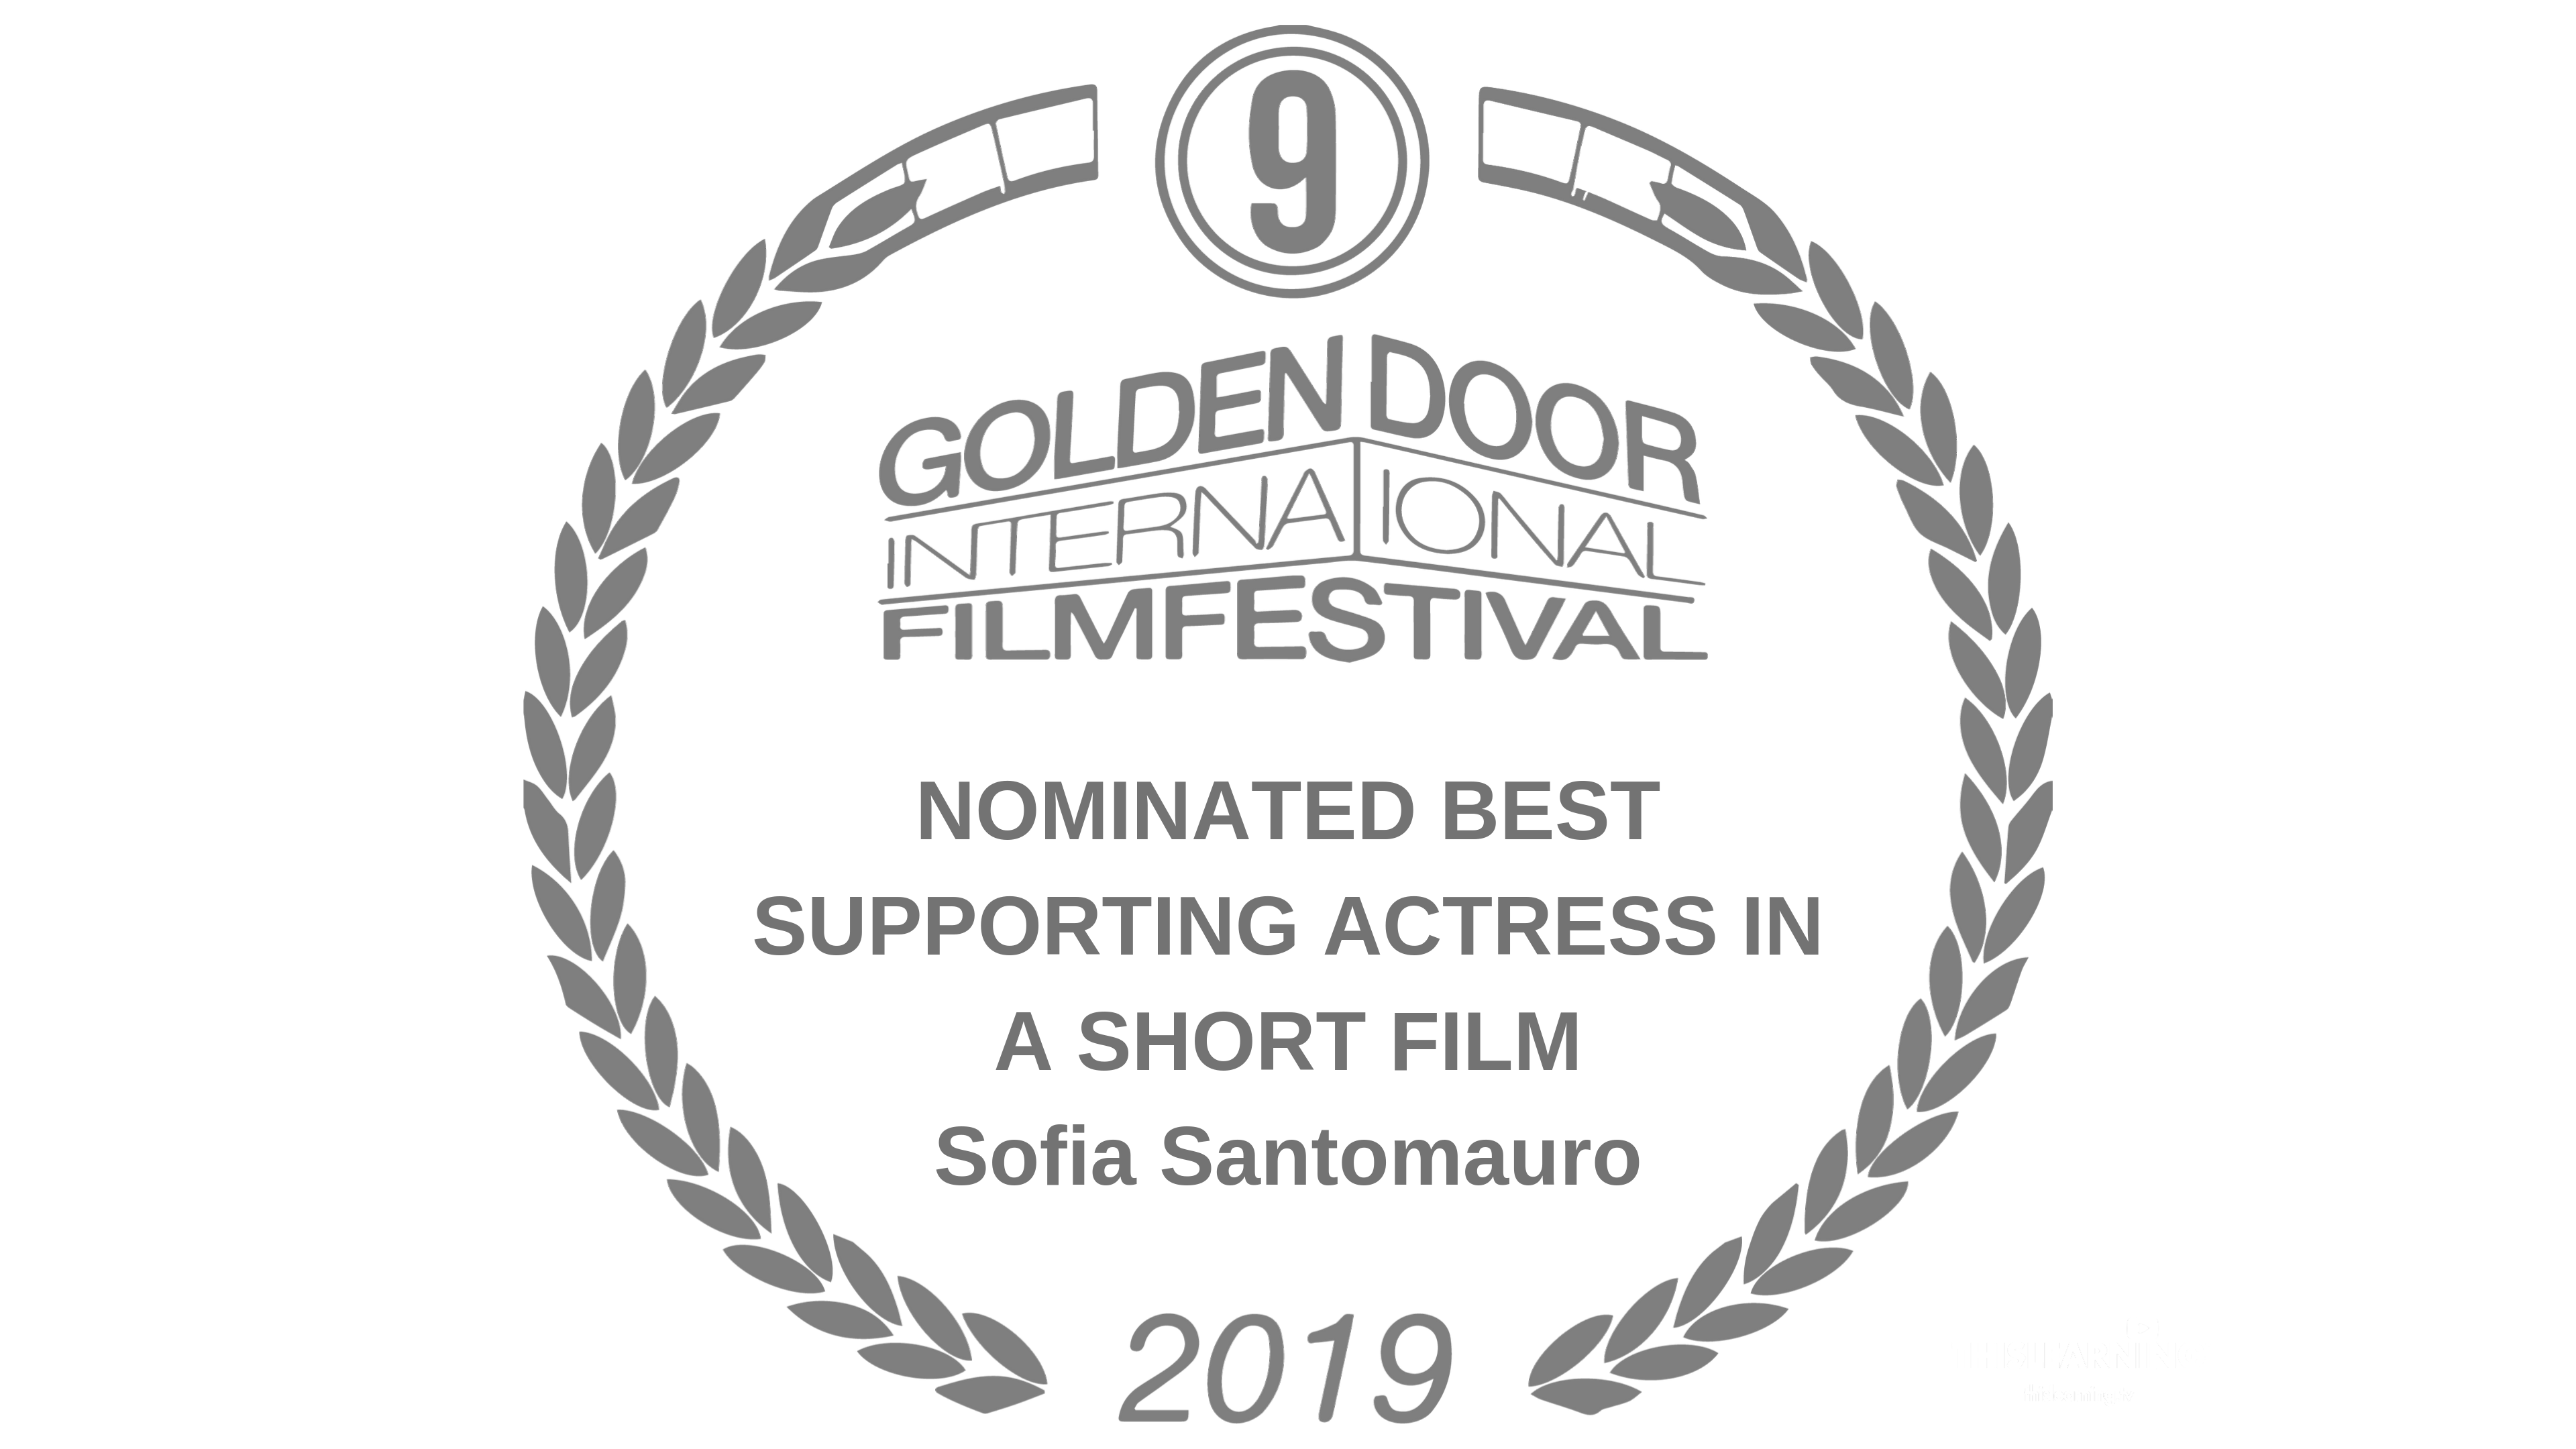 20191004A - Best Supporting Actress - Awards Only - GDIFF - LIKE US Movie - FSPAP - THISLEARNING